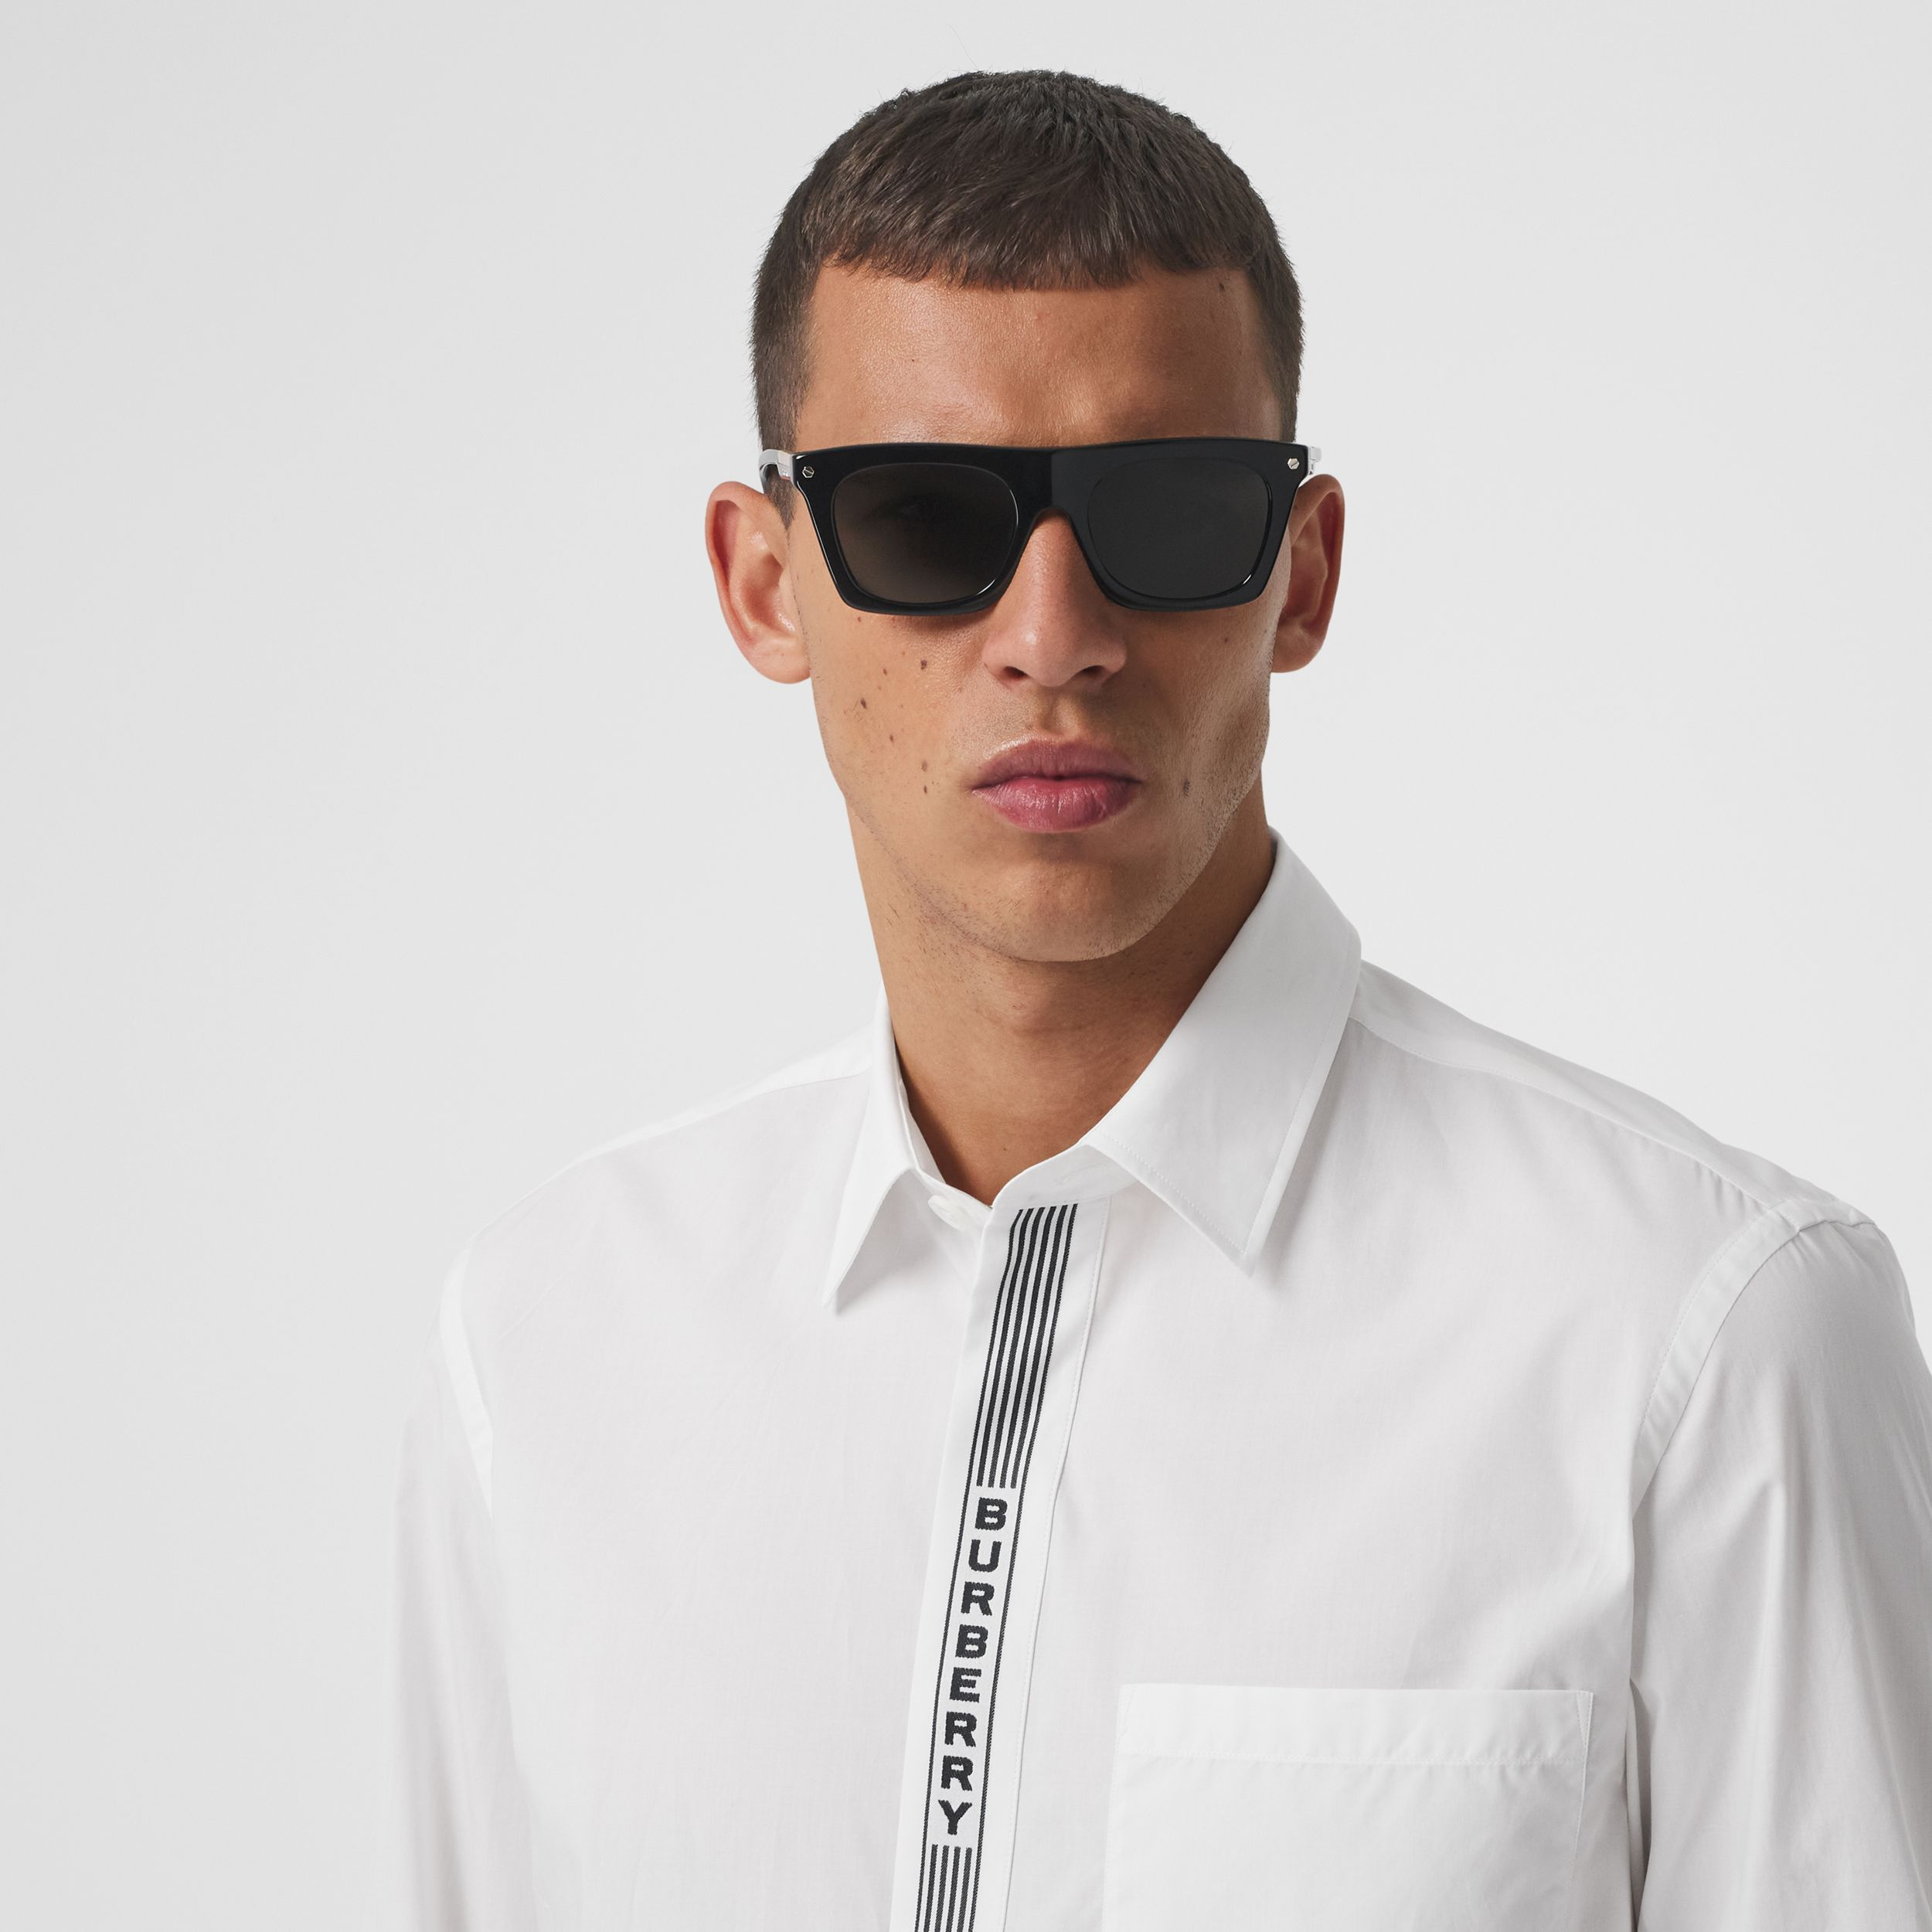 Logo Tape Cotton Shirt in White/black - Men | Burberry Australia - 2